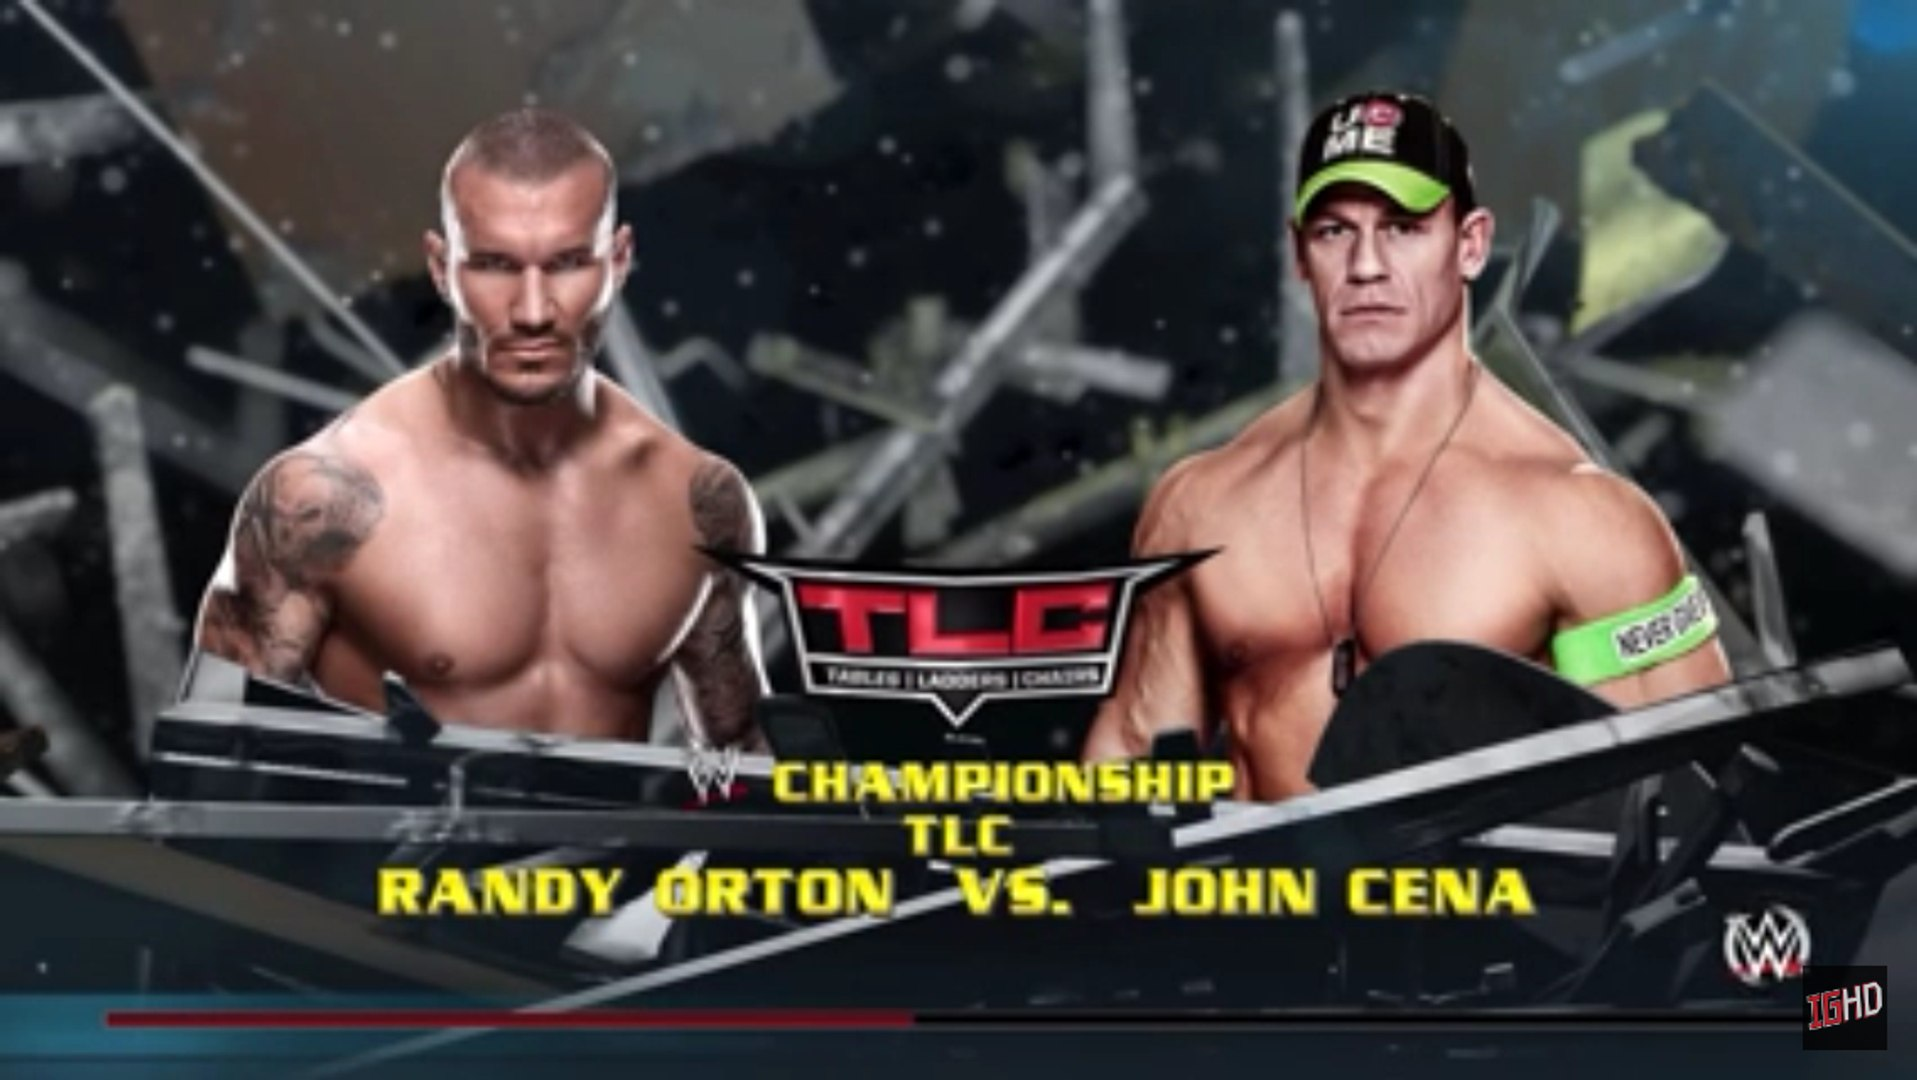 WWE 2K RIVALRIES - Randy Orton vs. John Cena | WWE TLC 2013 | WWE 2K15 Gameplay